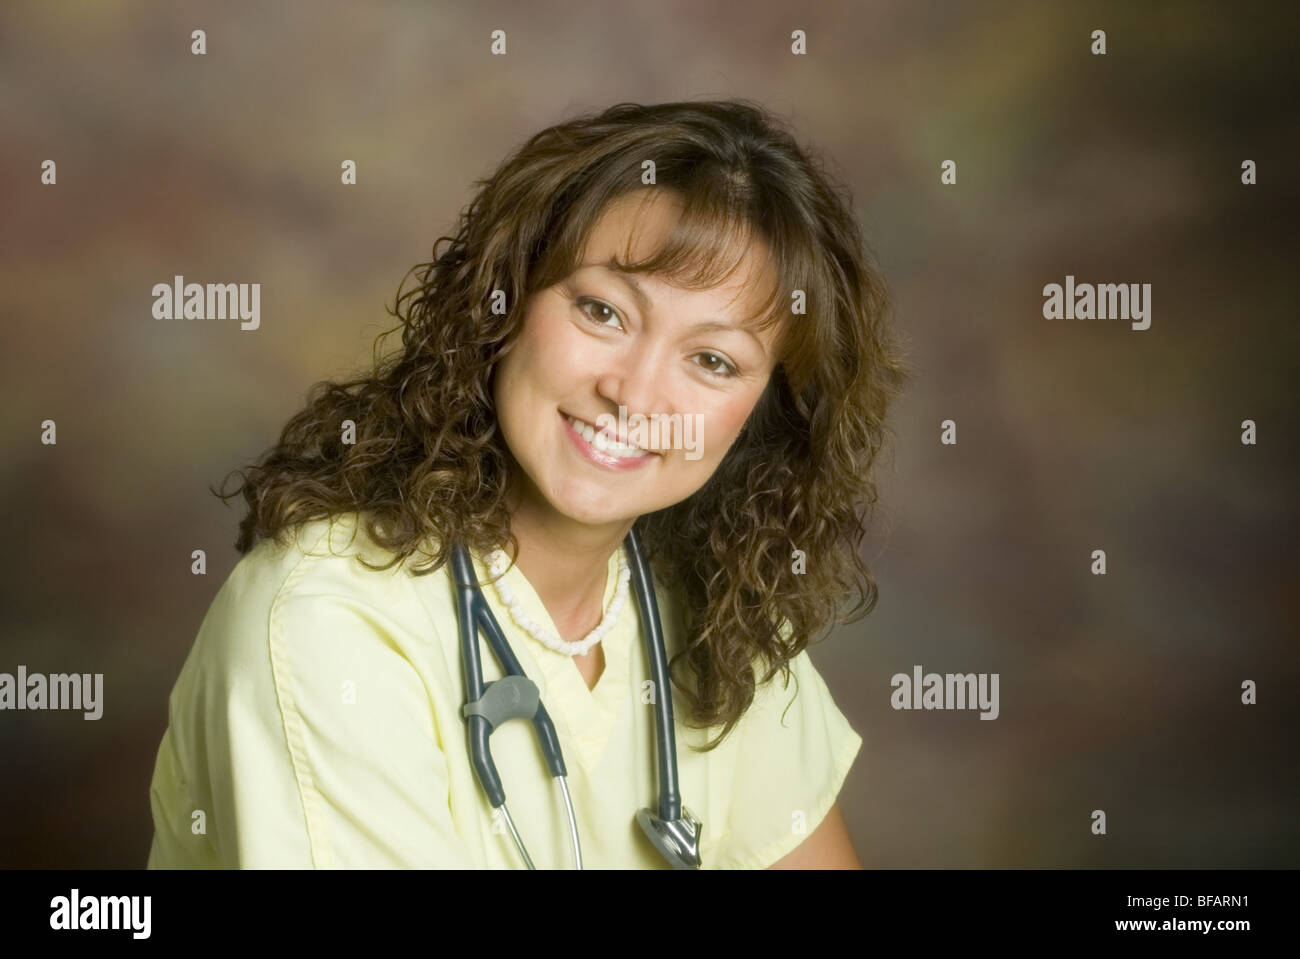 Young nurse studio background, portrait, direct to camera - Stock Image